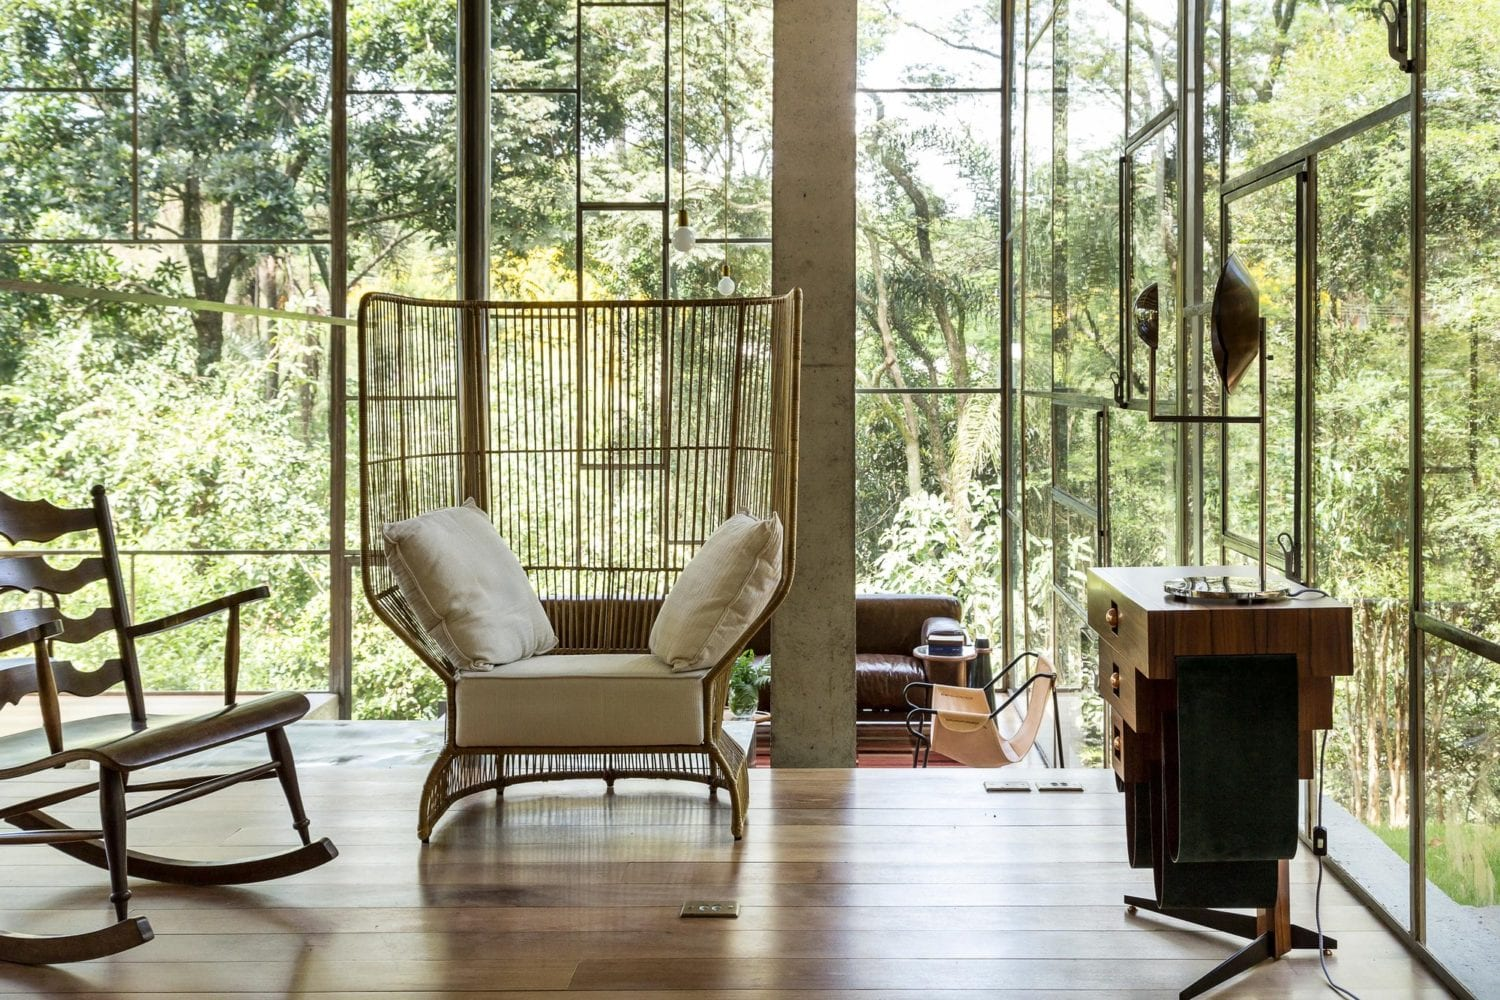 Library House Casa Biblioteca Brazil By Atelier Branco Yellowtrace 07